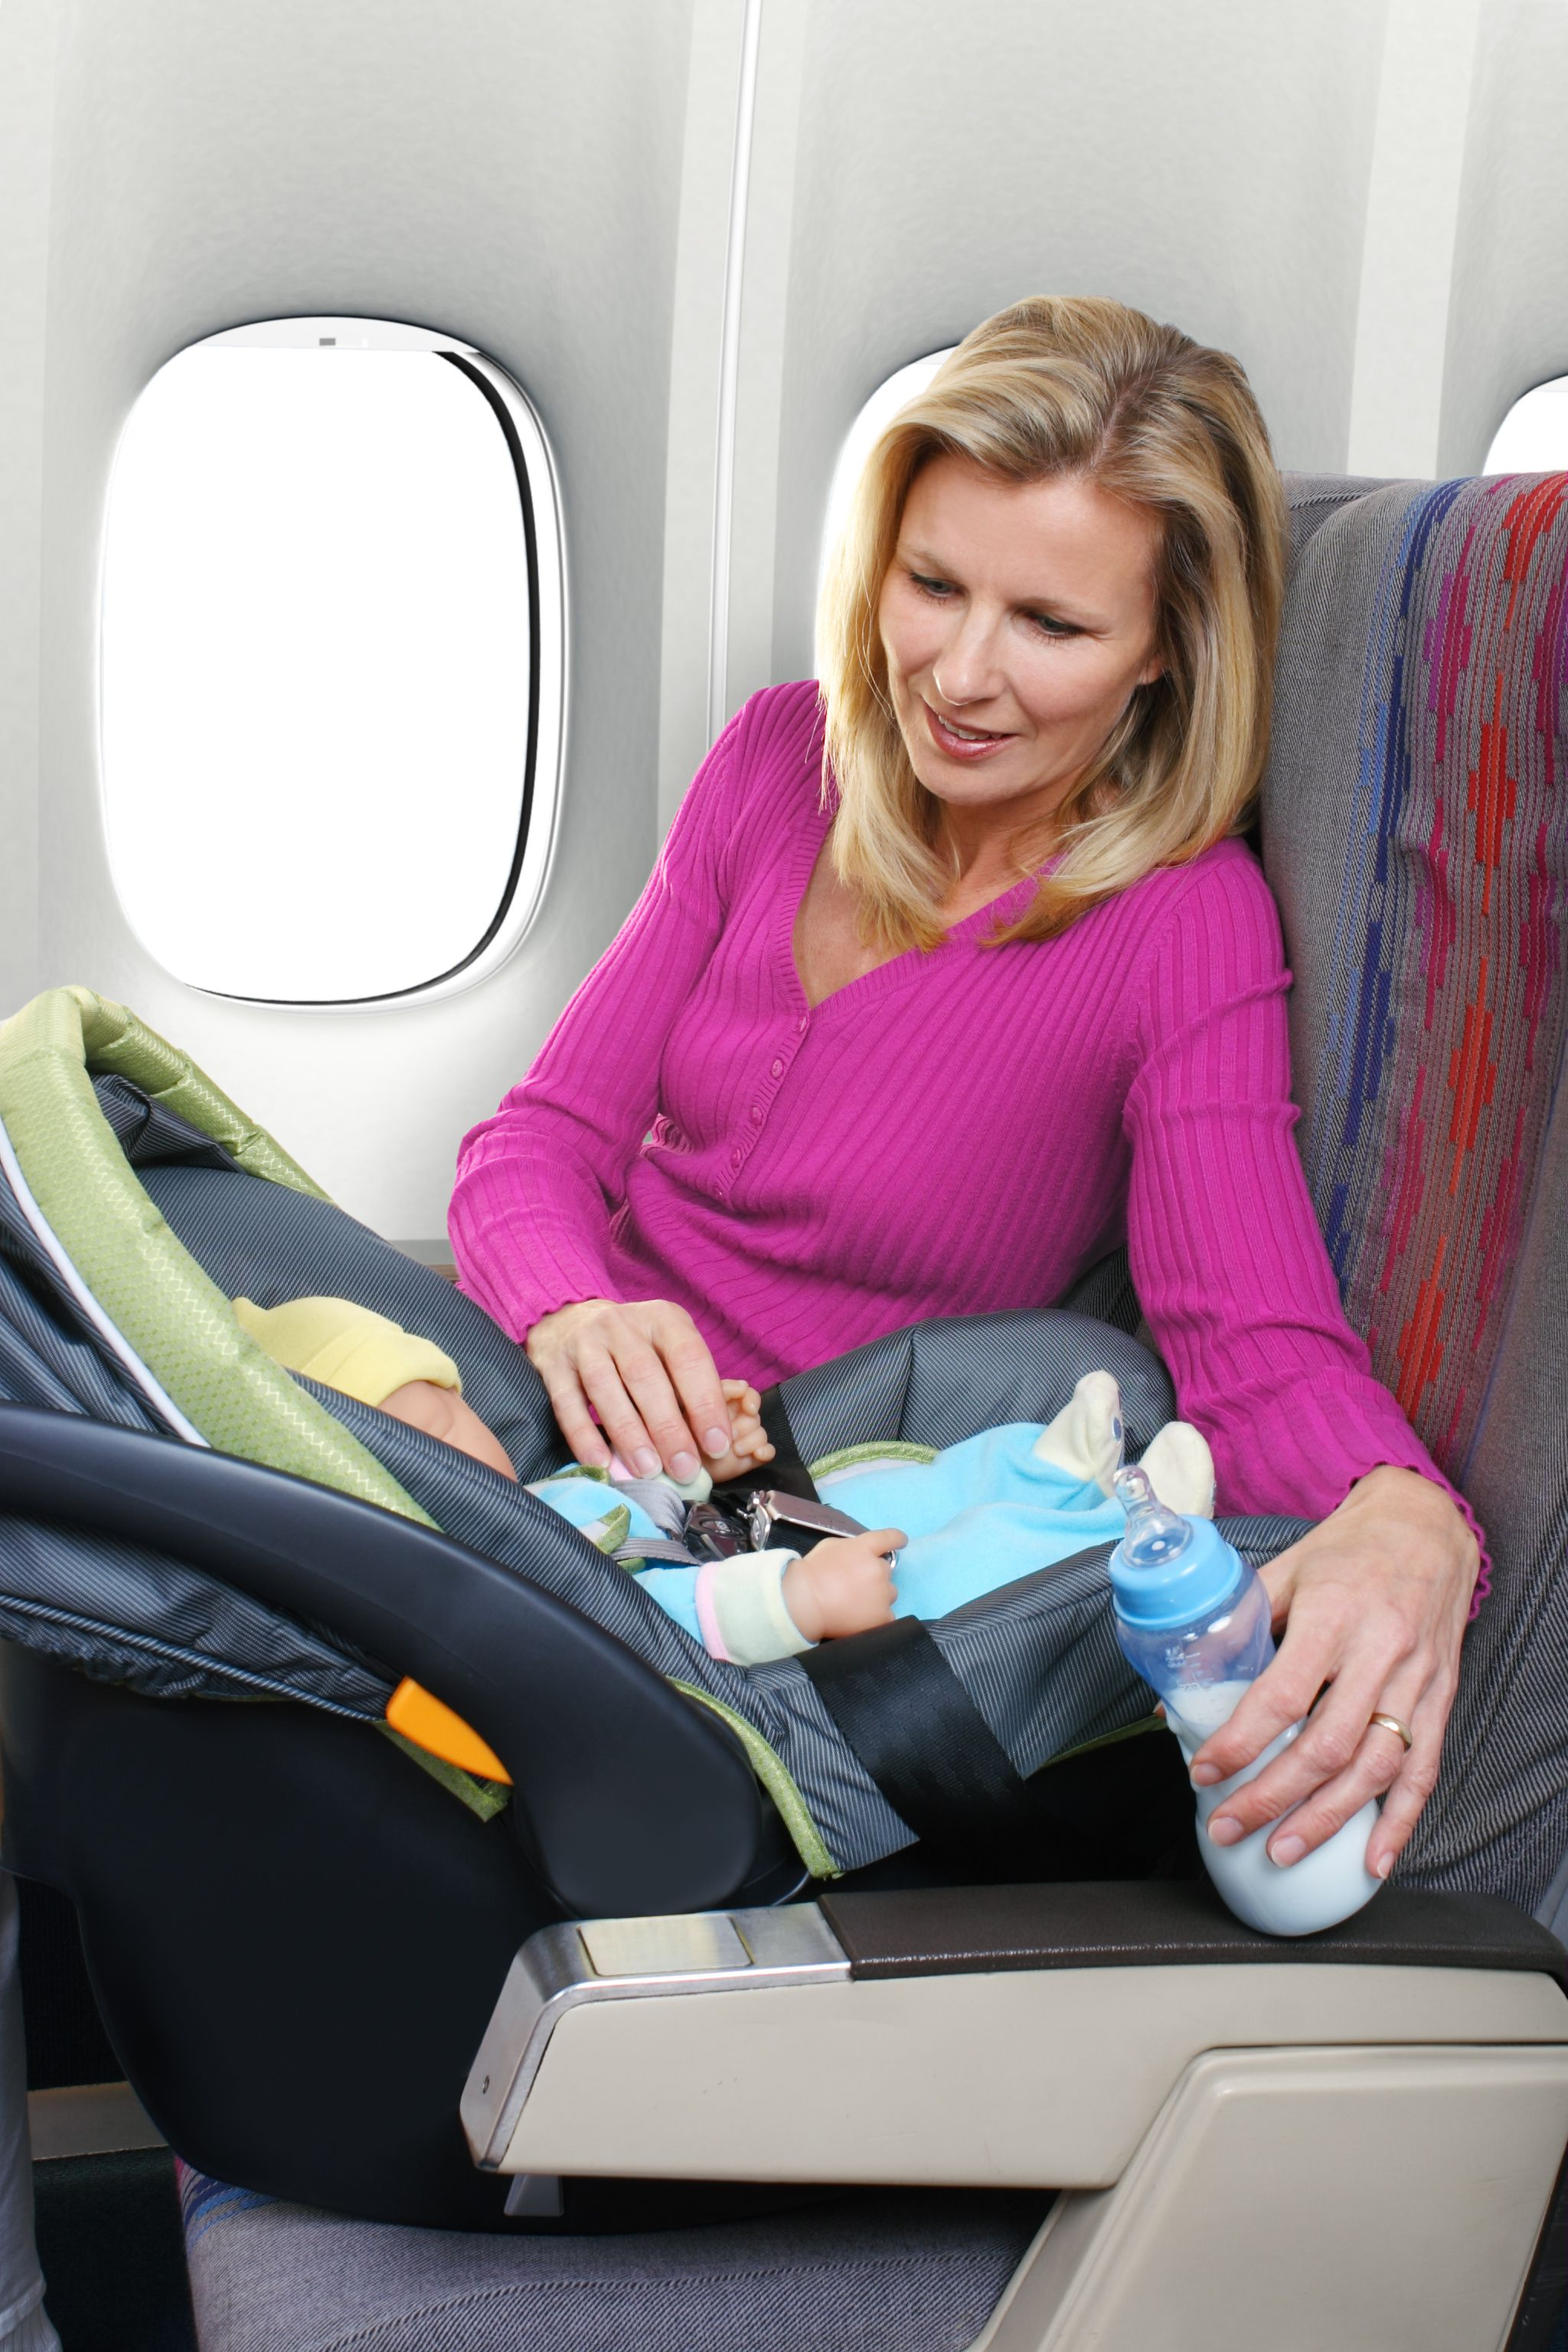 Federal Airplane Seat Belt And Carseat Regulations